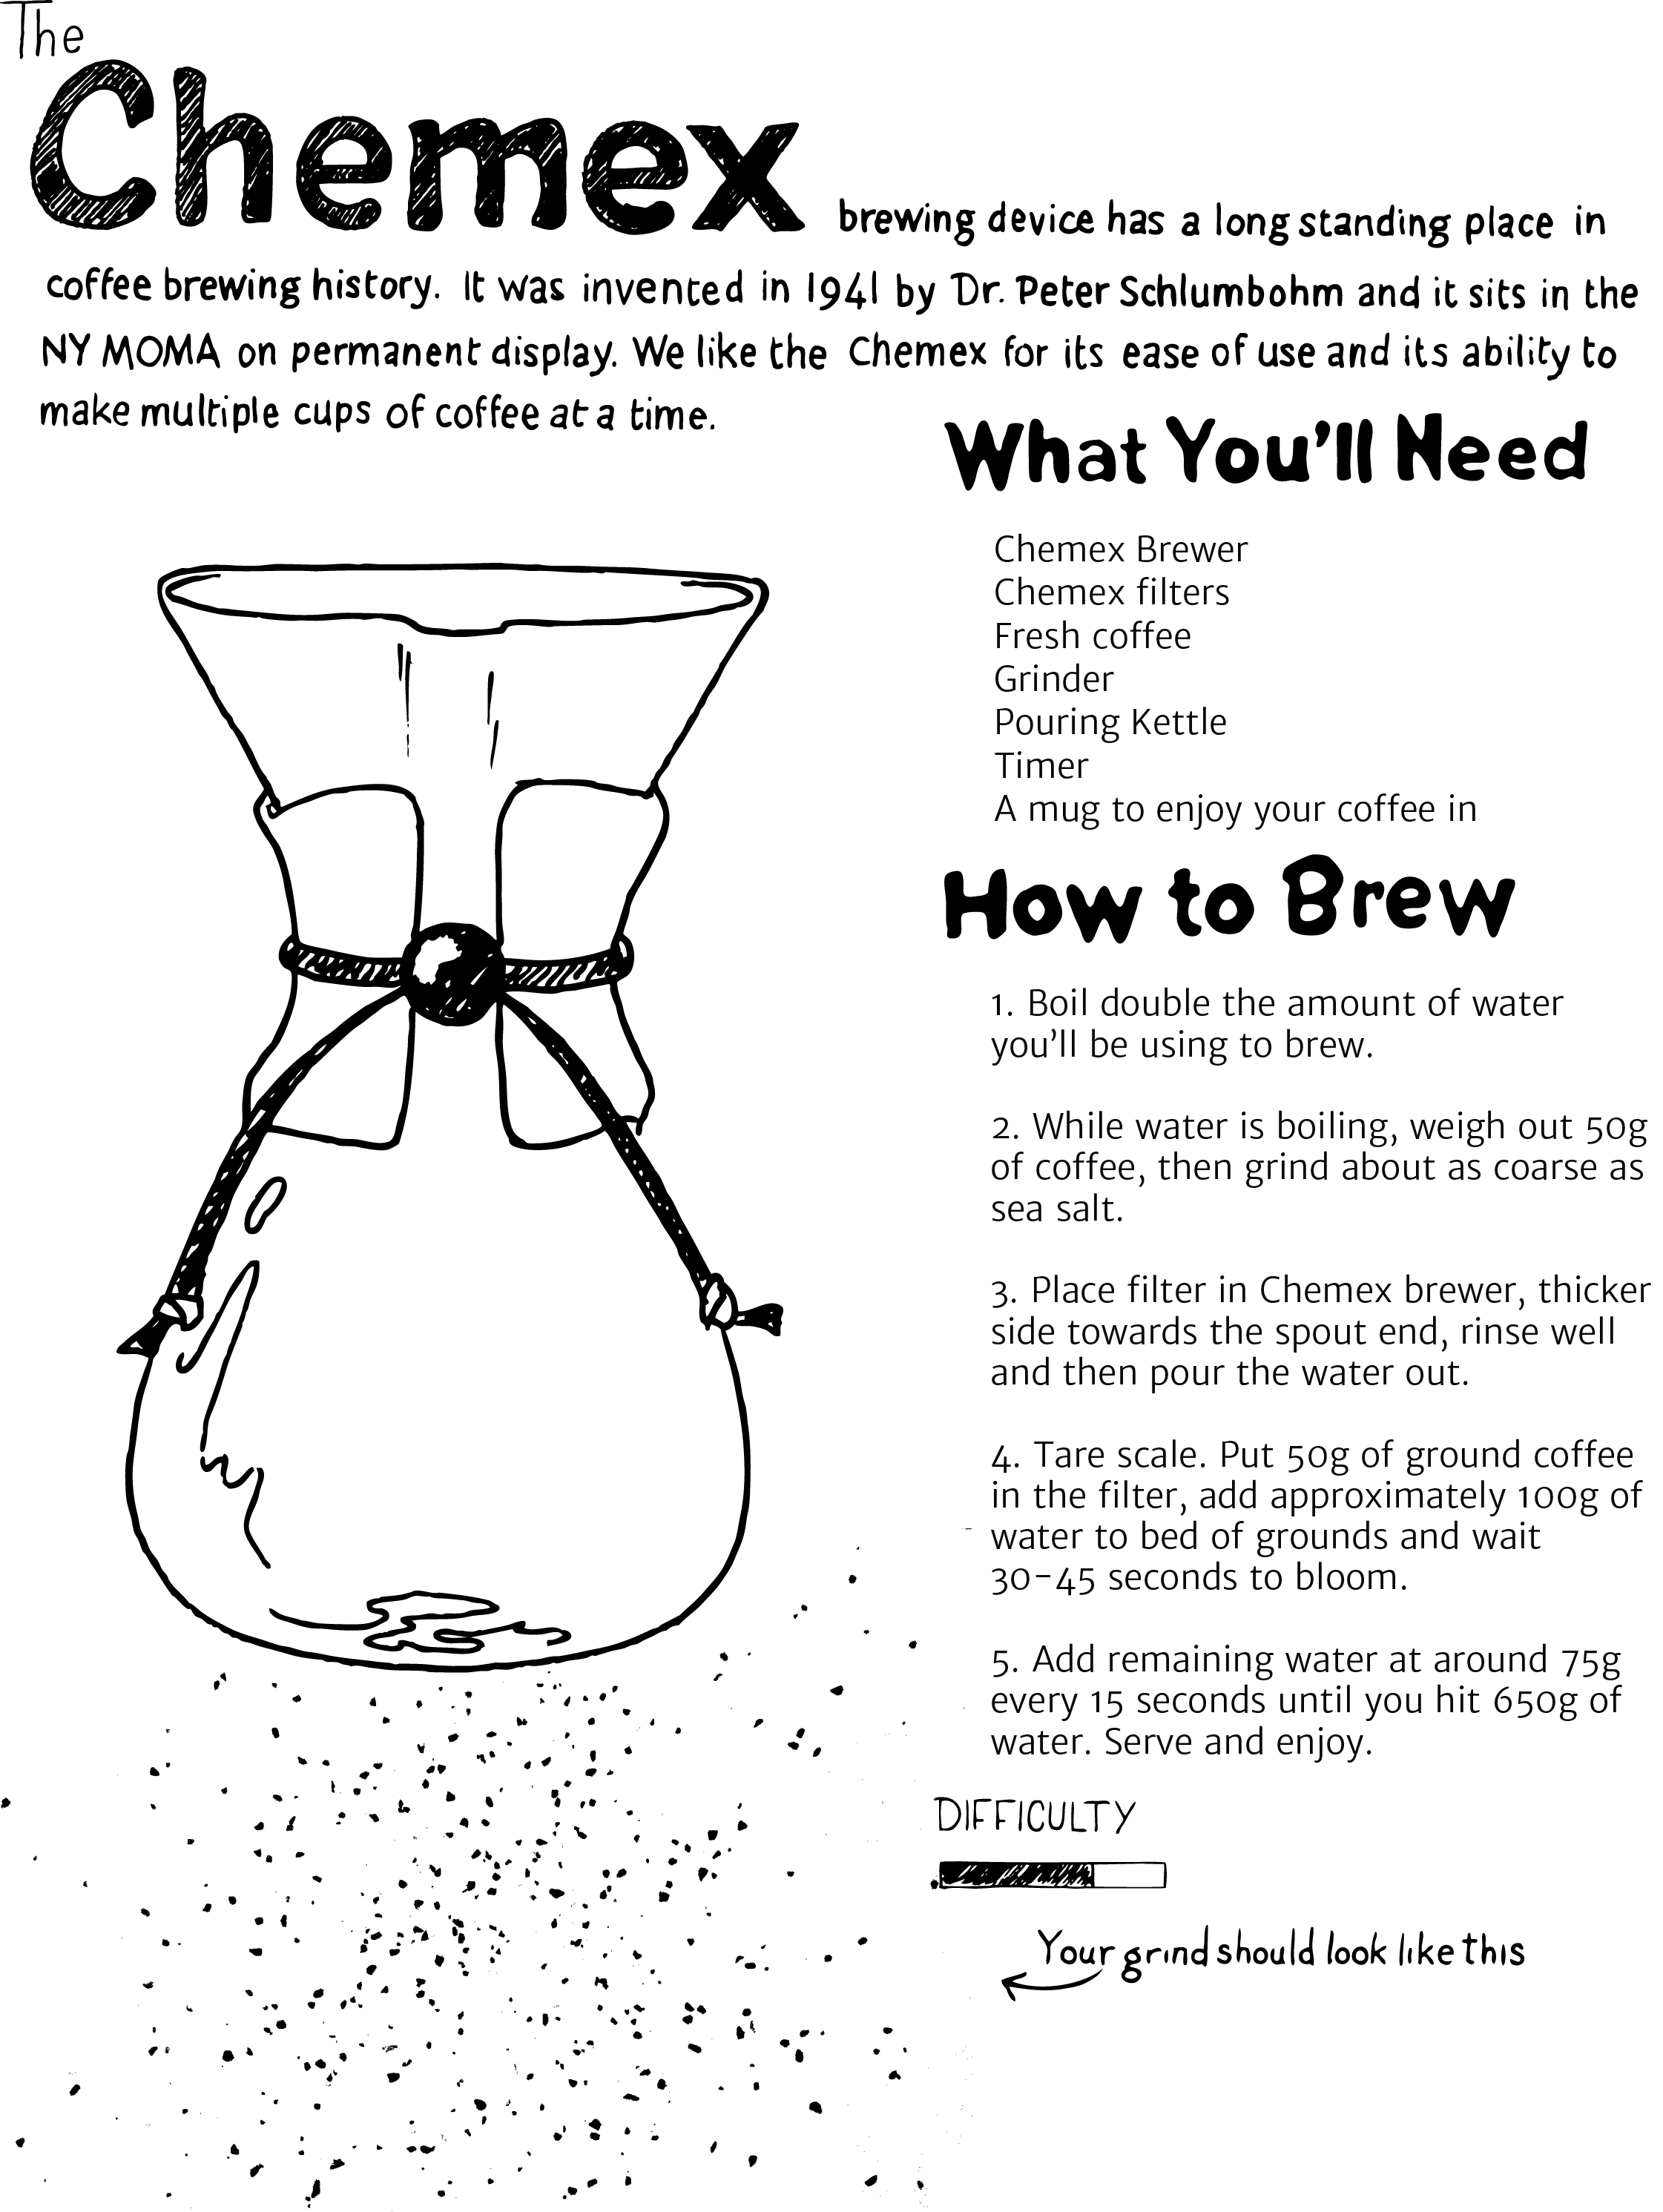 thechemex.png